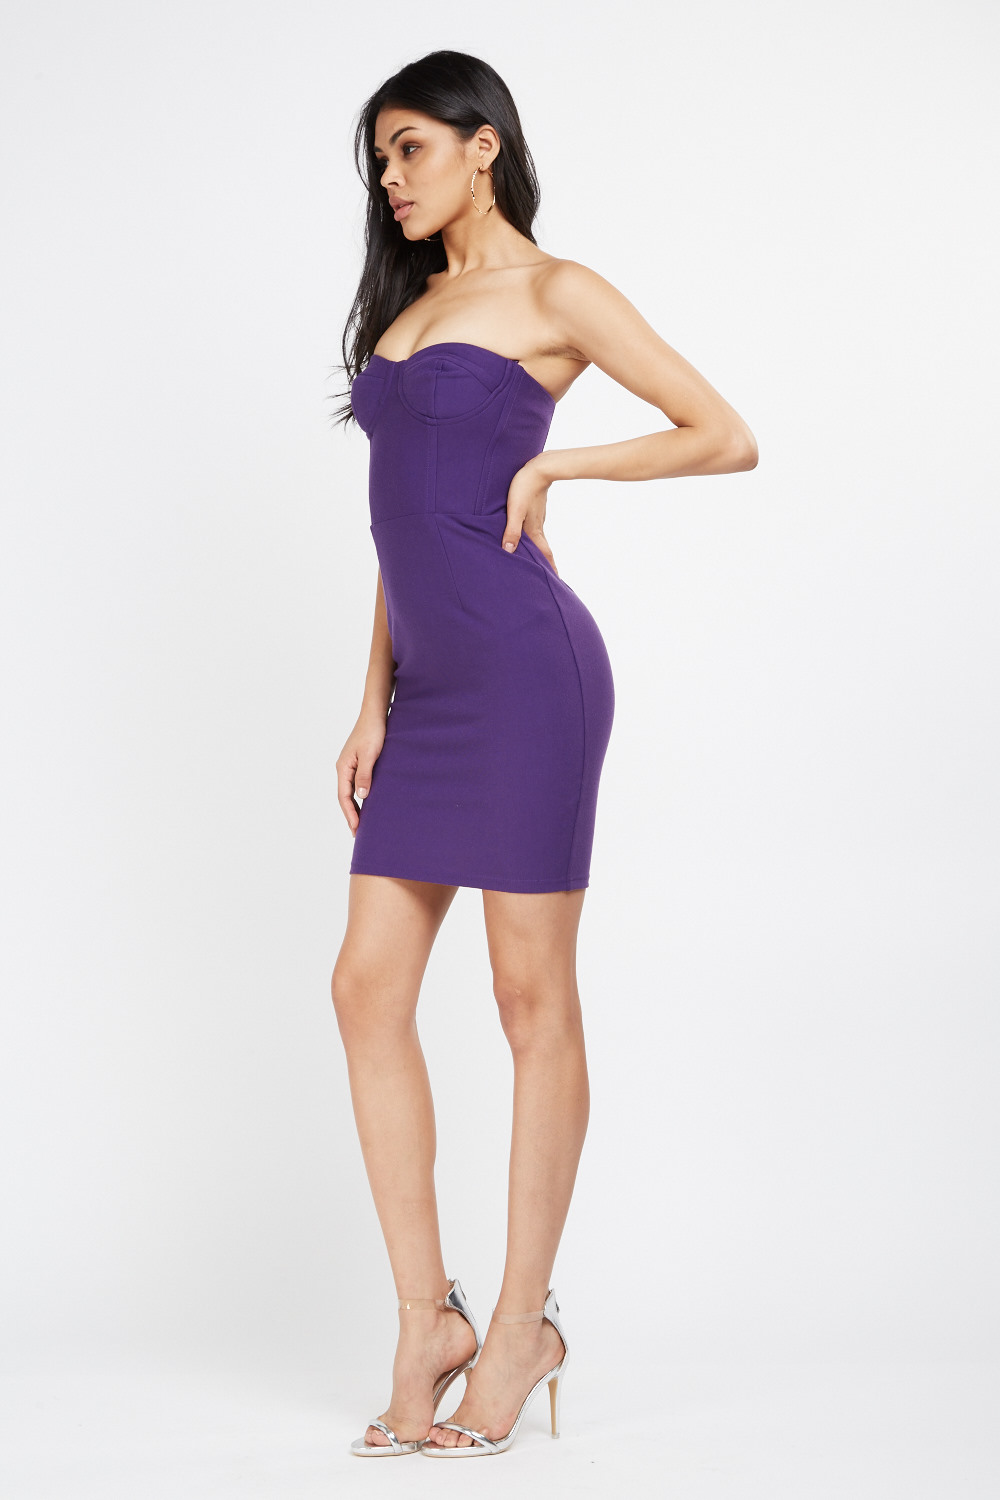 18205cc31009 Strapless Sweetheart Bodycon Dress - Purple - Just £5